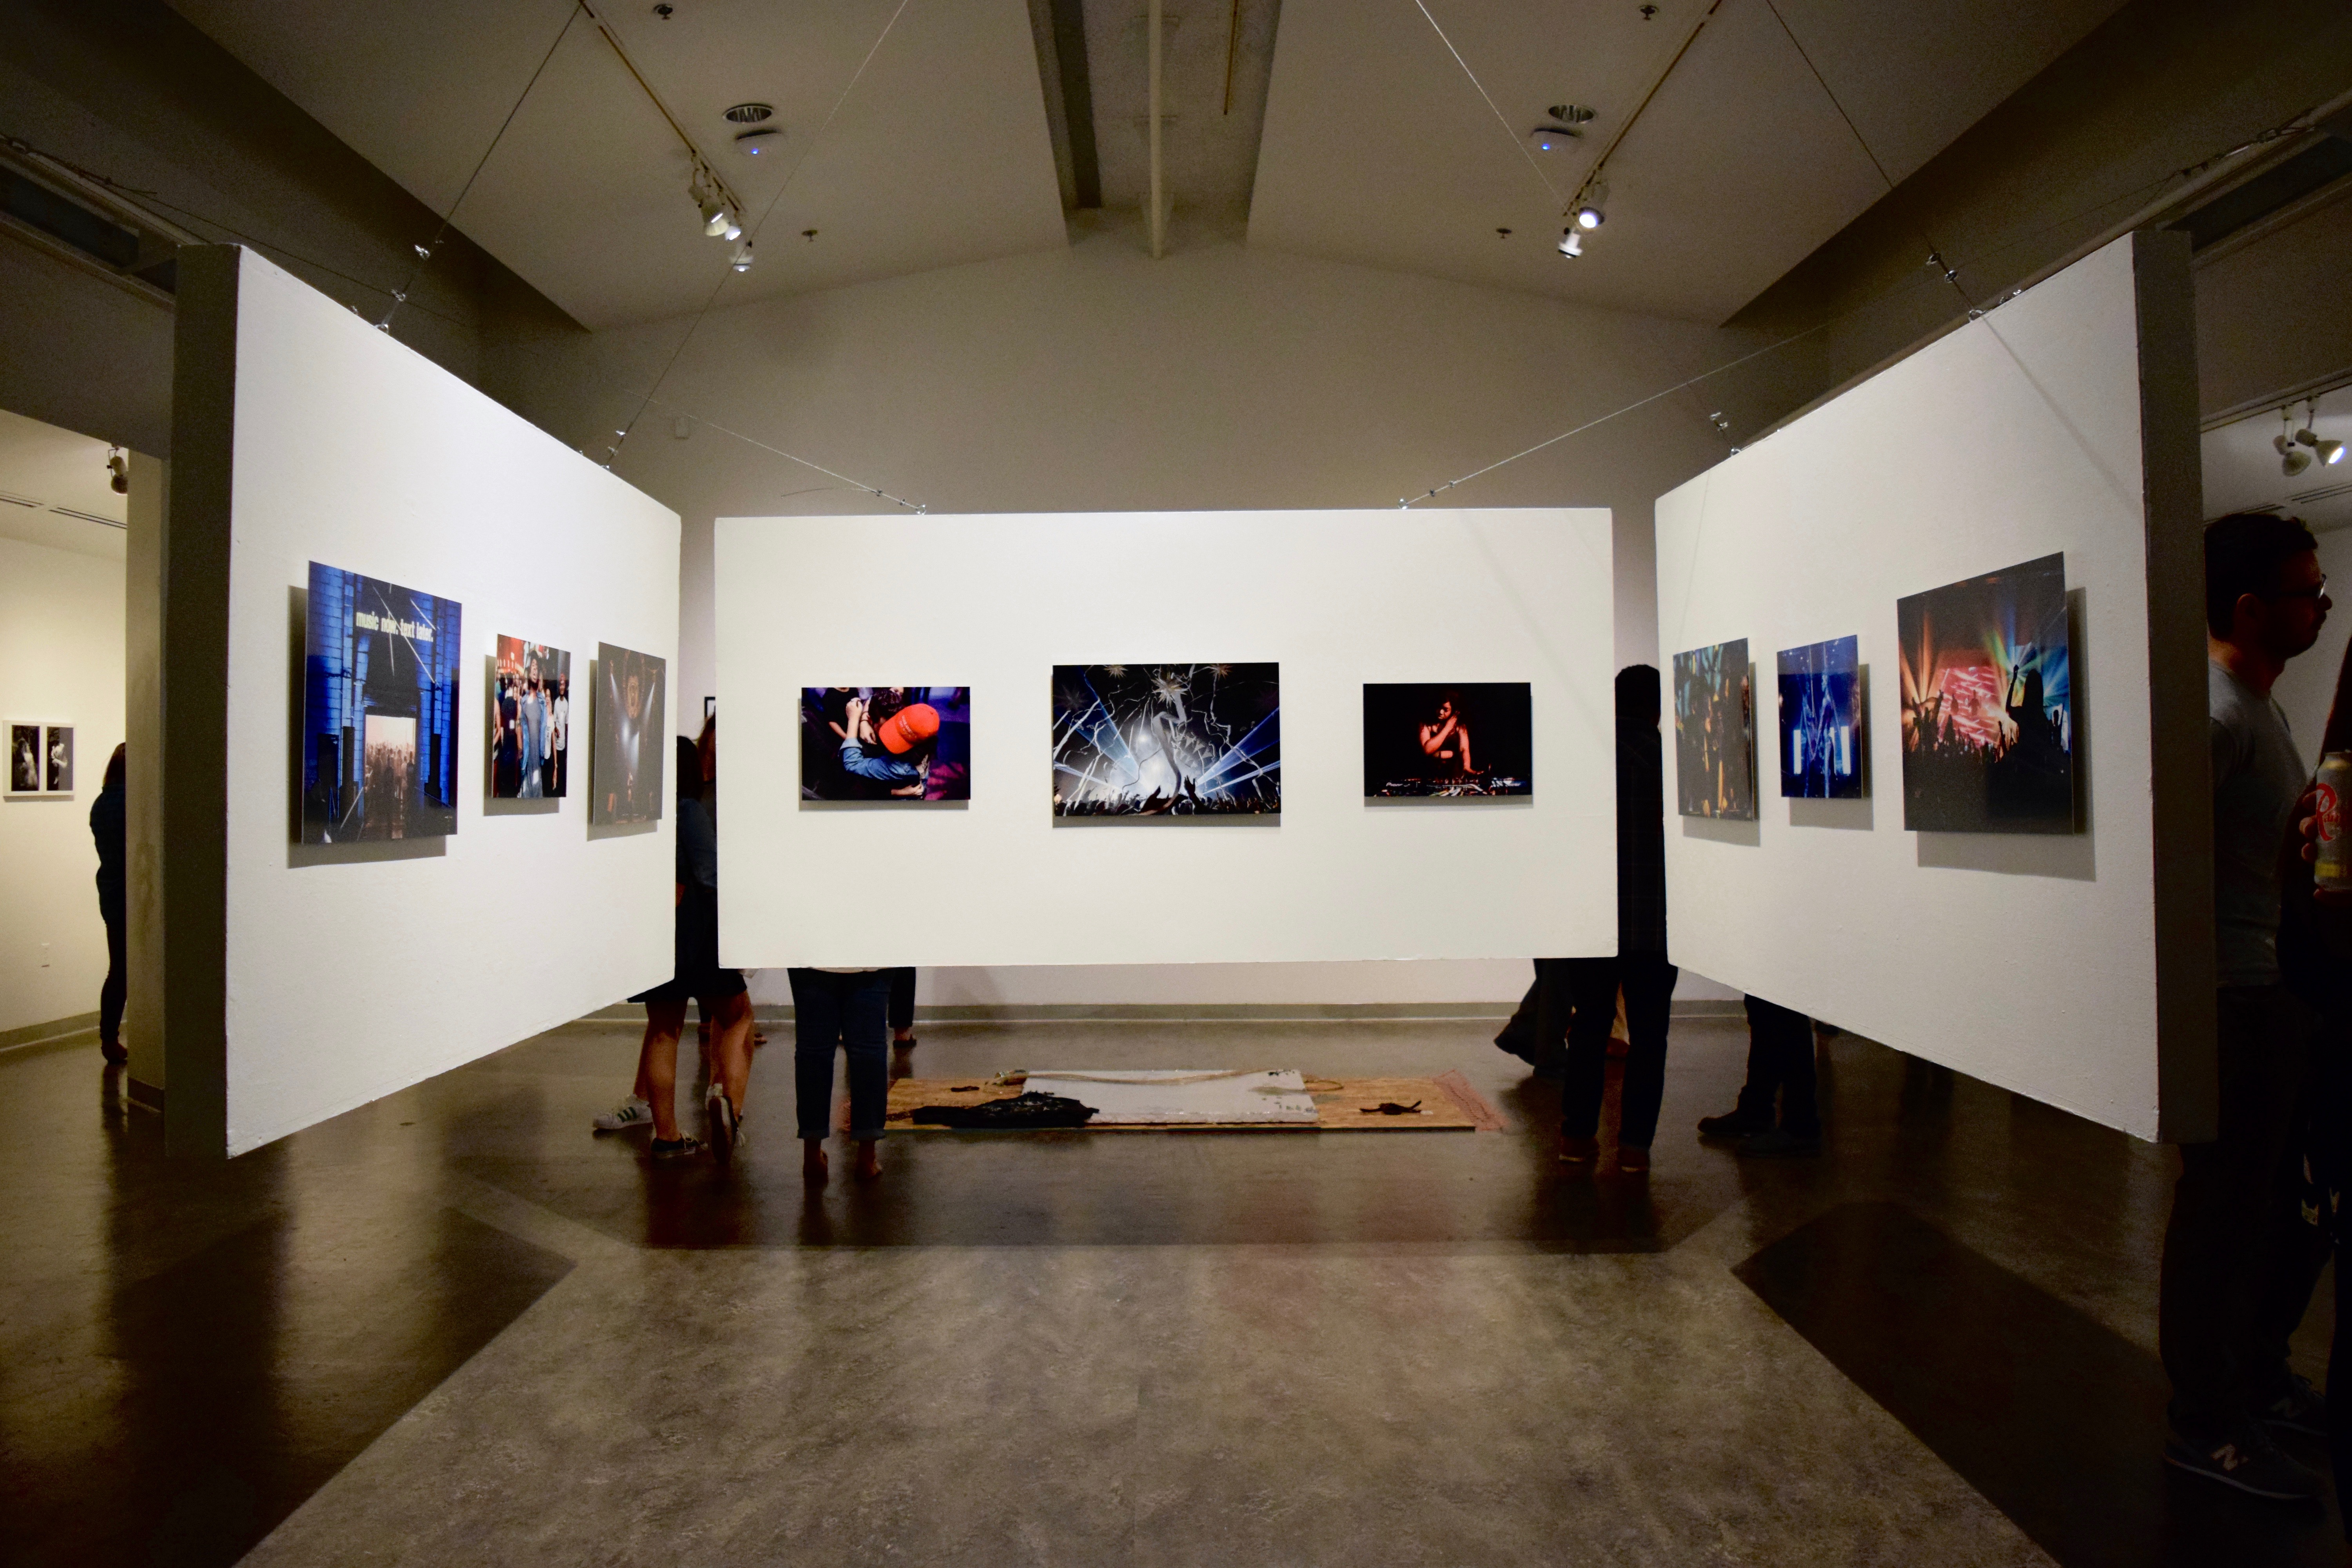 The BFA Photography Exhibition is publicly available during the Fine Arts Building's hours of operation and will be on display until Friday, June 9.